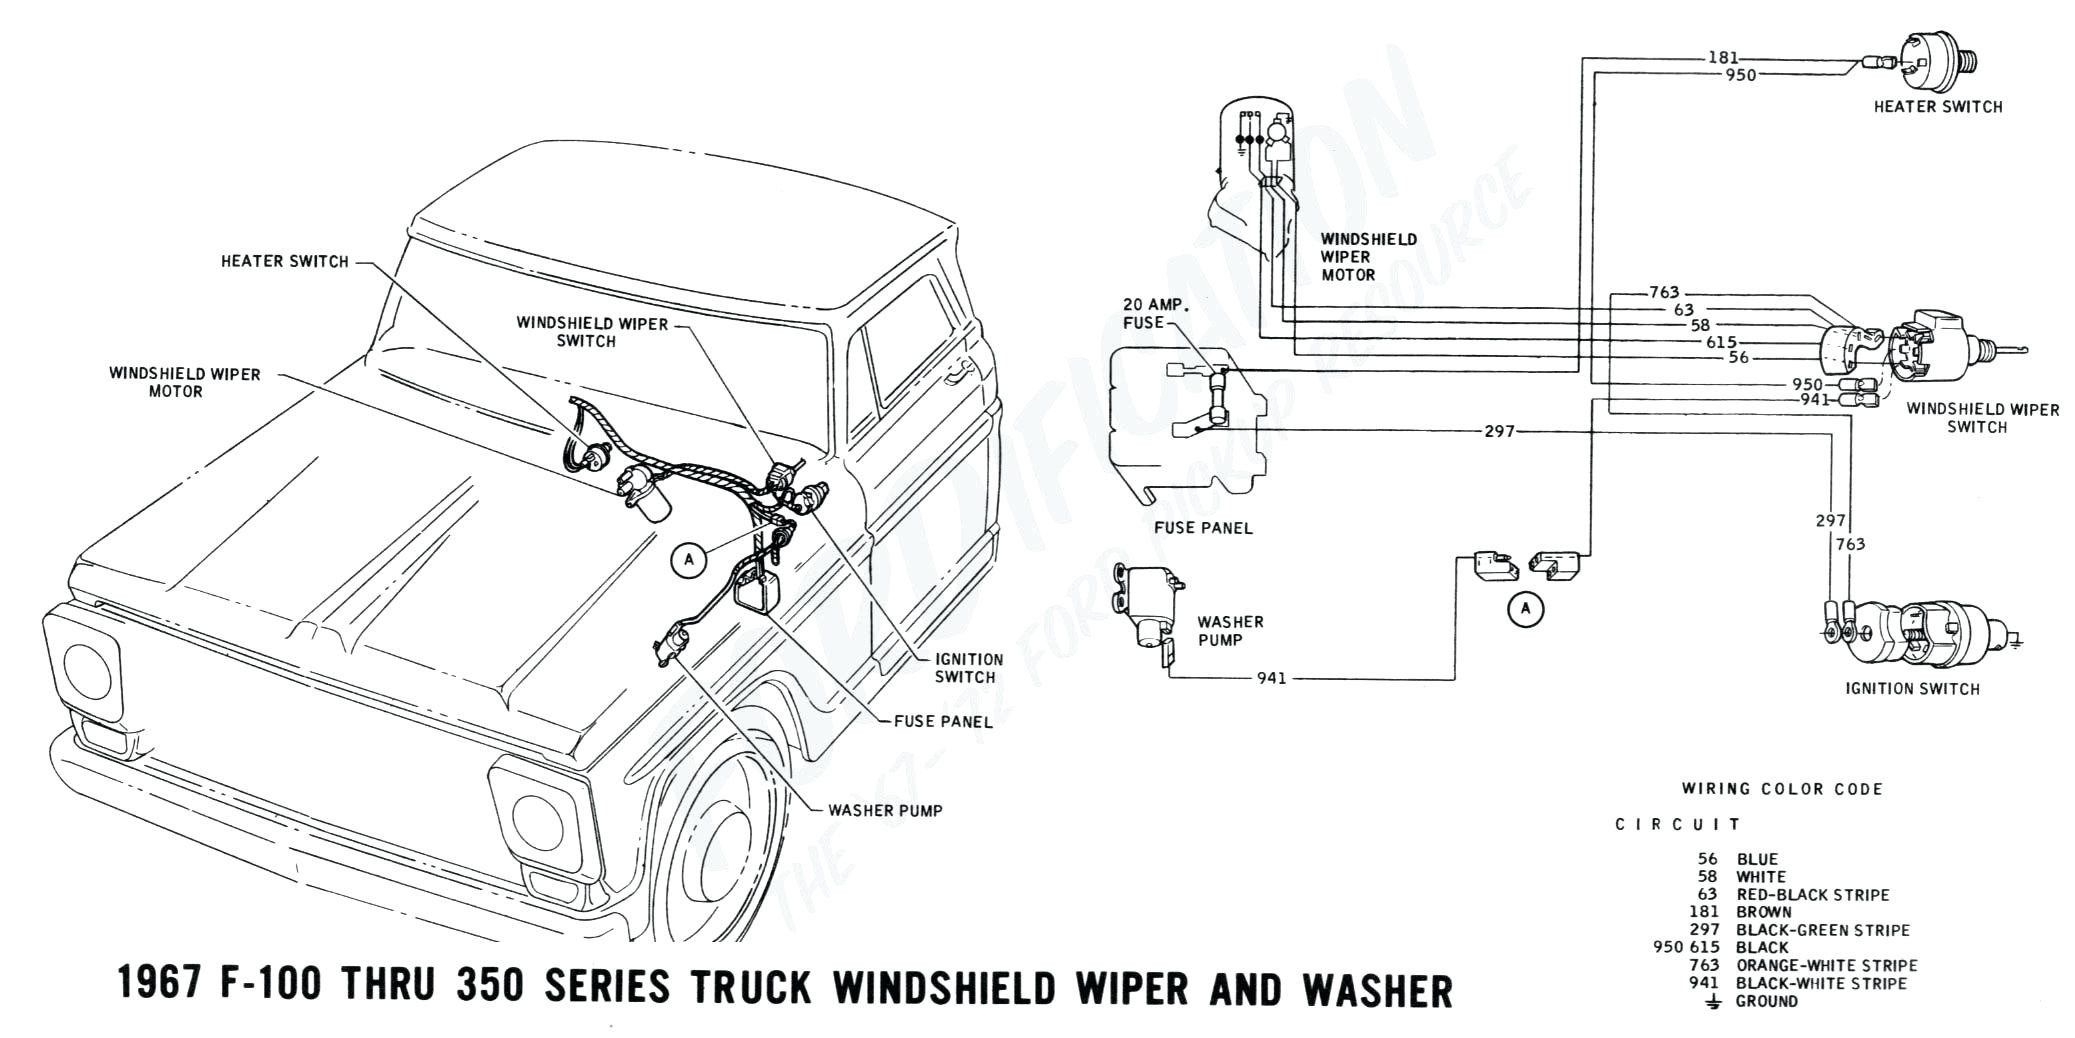 ford f 150 wiper motor wiring most exciting wiring diagram ford f 150 wiper motor wiring [ 2075 x 1038 Pixel ]